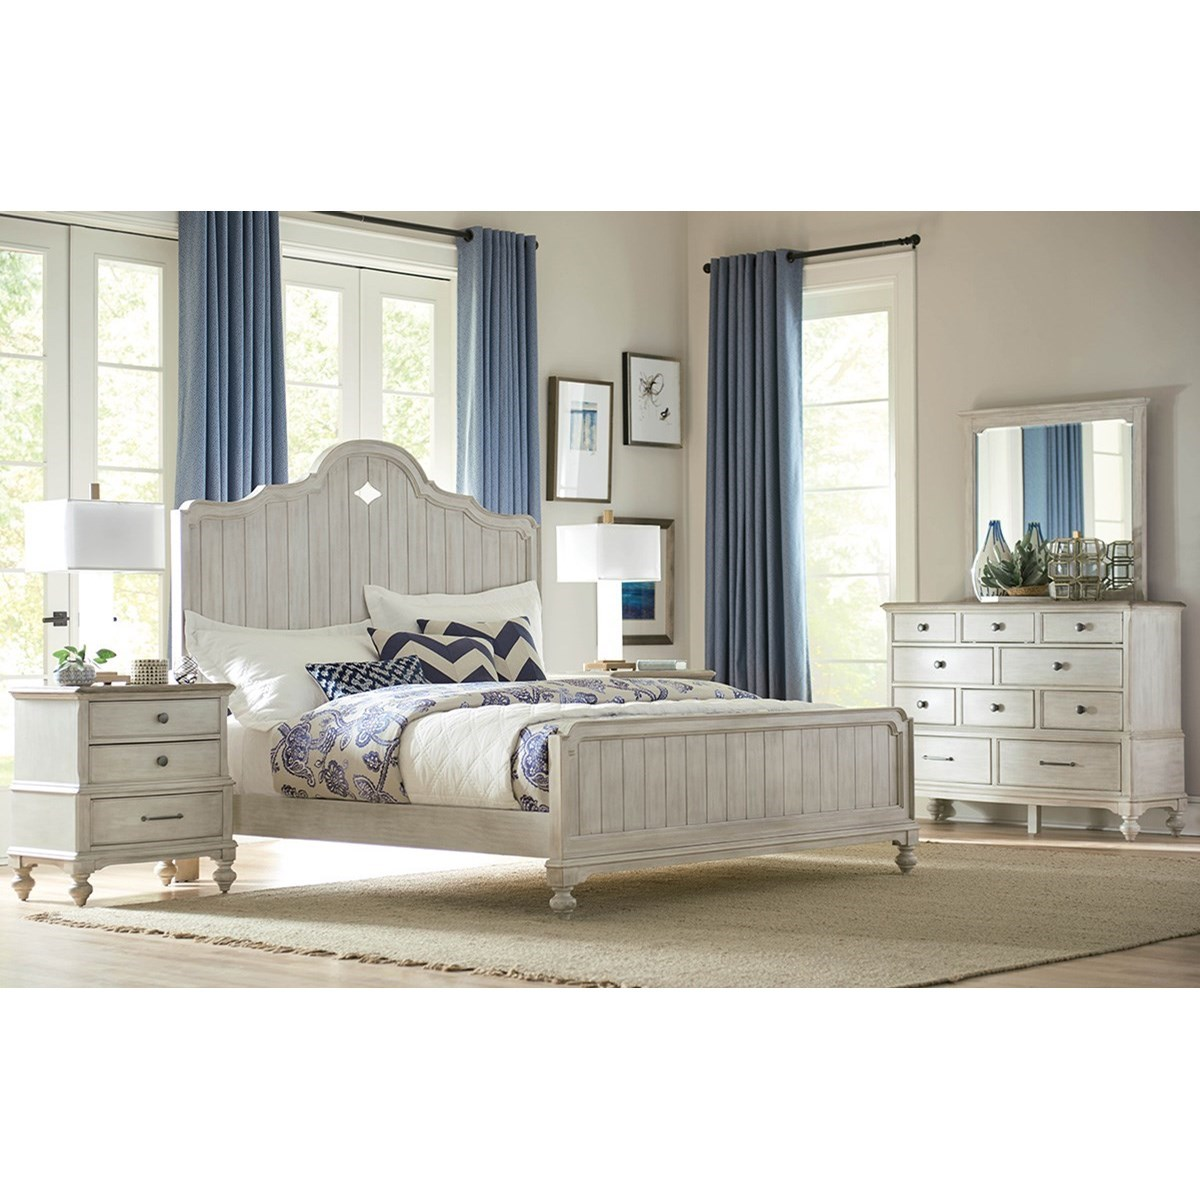 Litchfield California King Bedroom Group by American Drew at Mueller Furniture